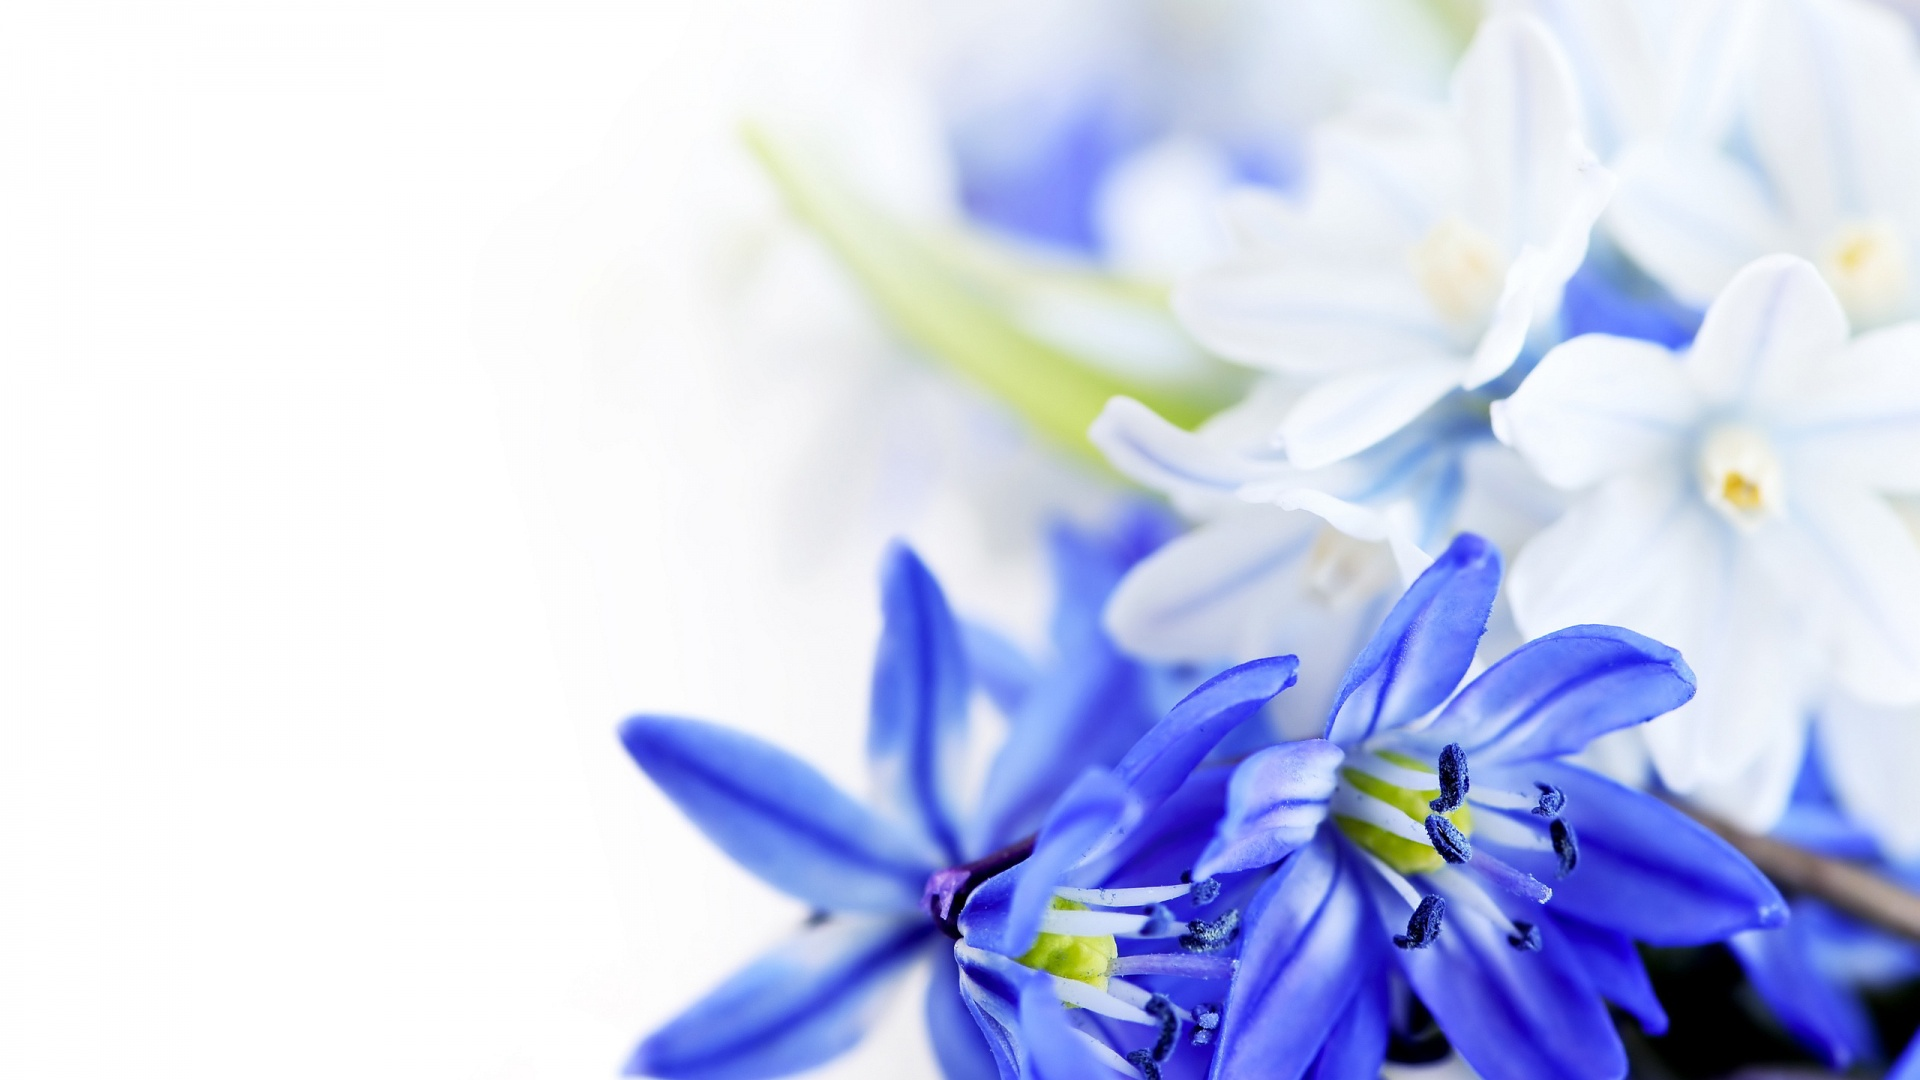 blue flowers 119 cool wallpaper - hdflowerwallpaper